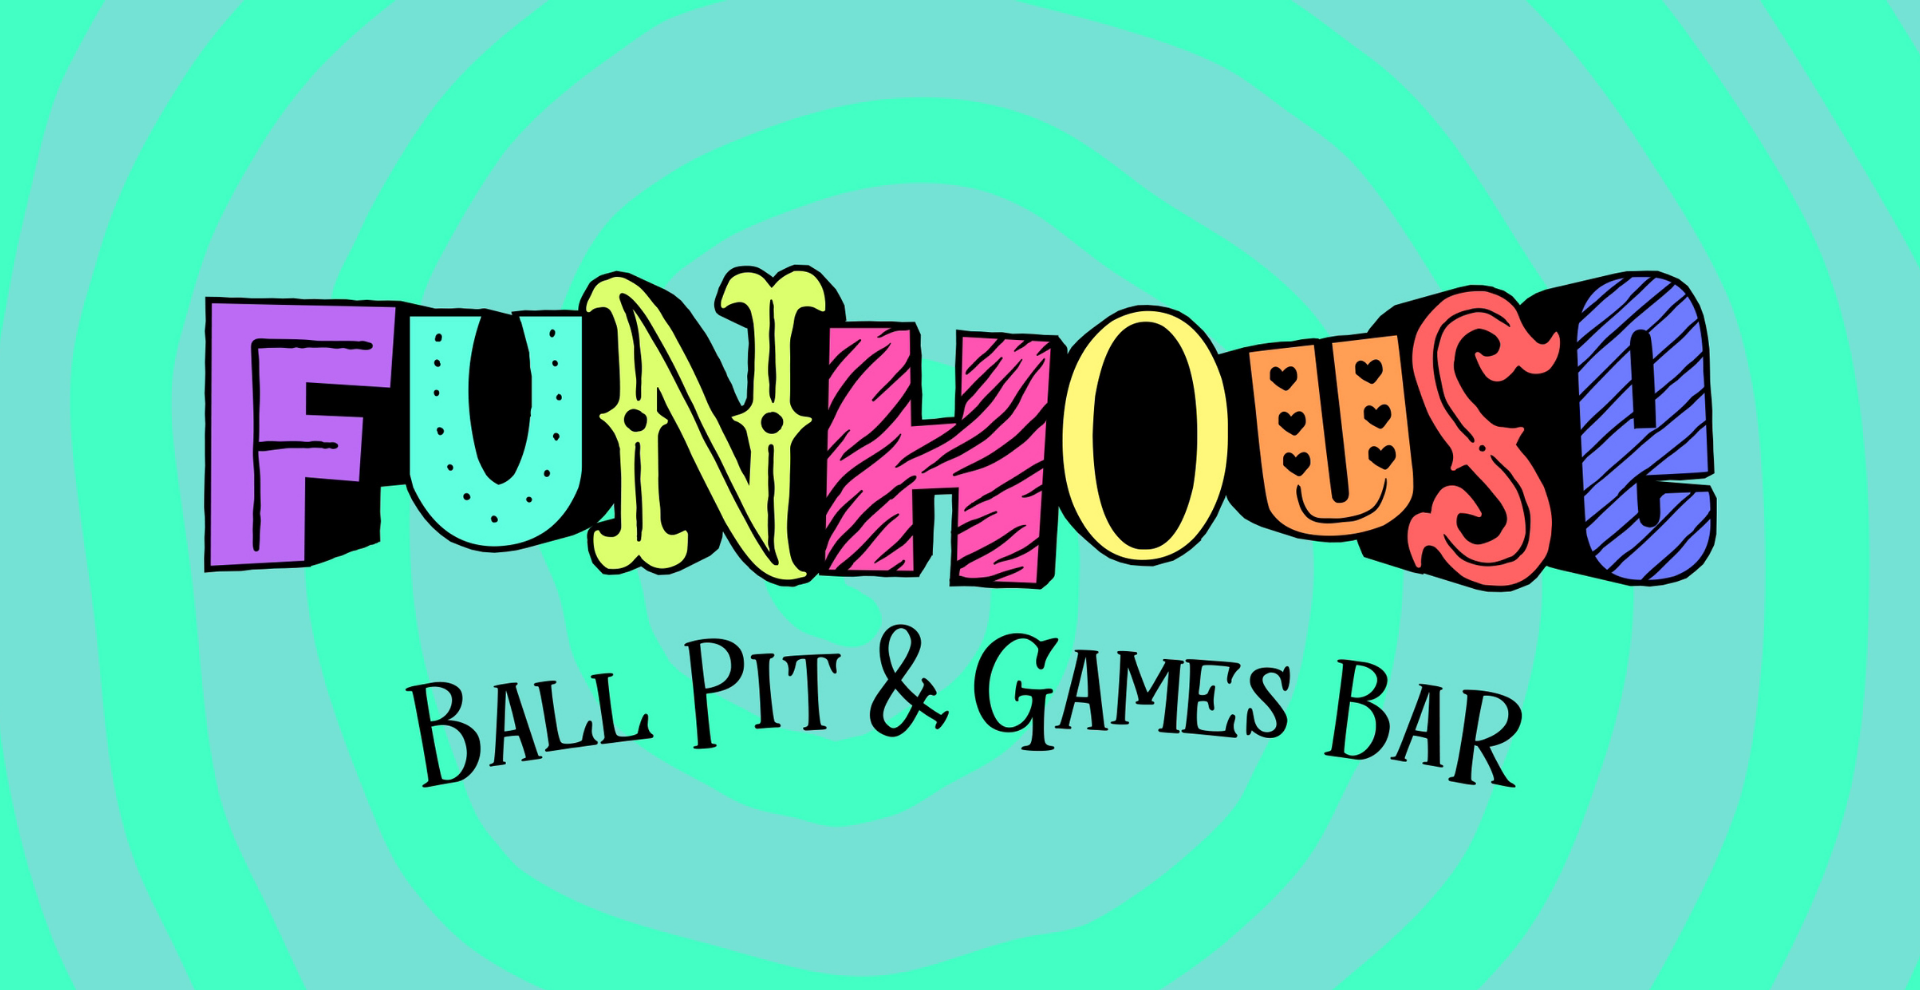 FunHouse Rules - Ball Pit Ticket